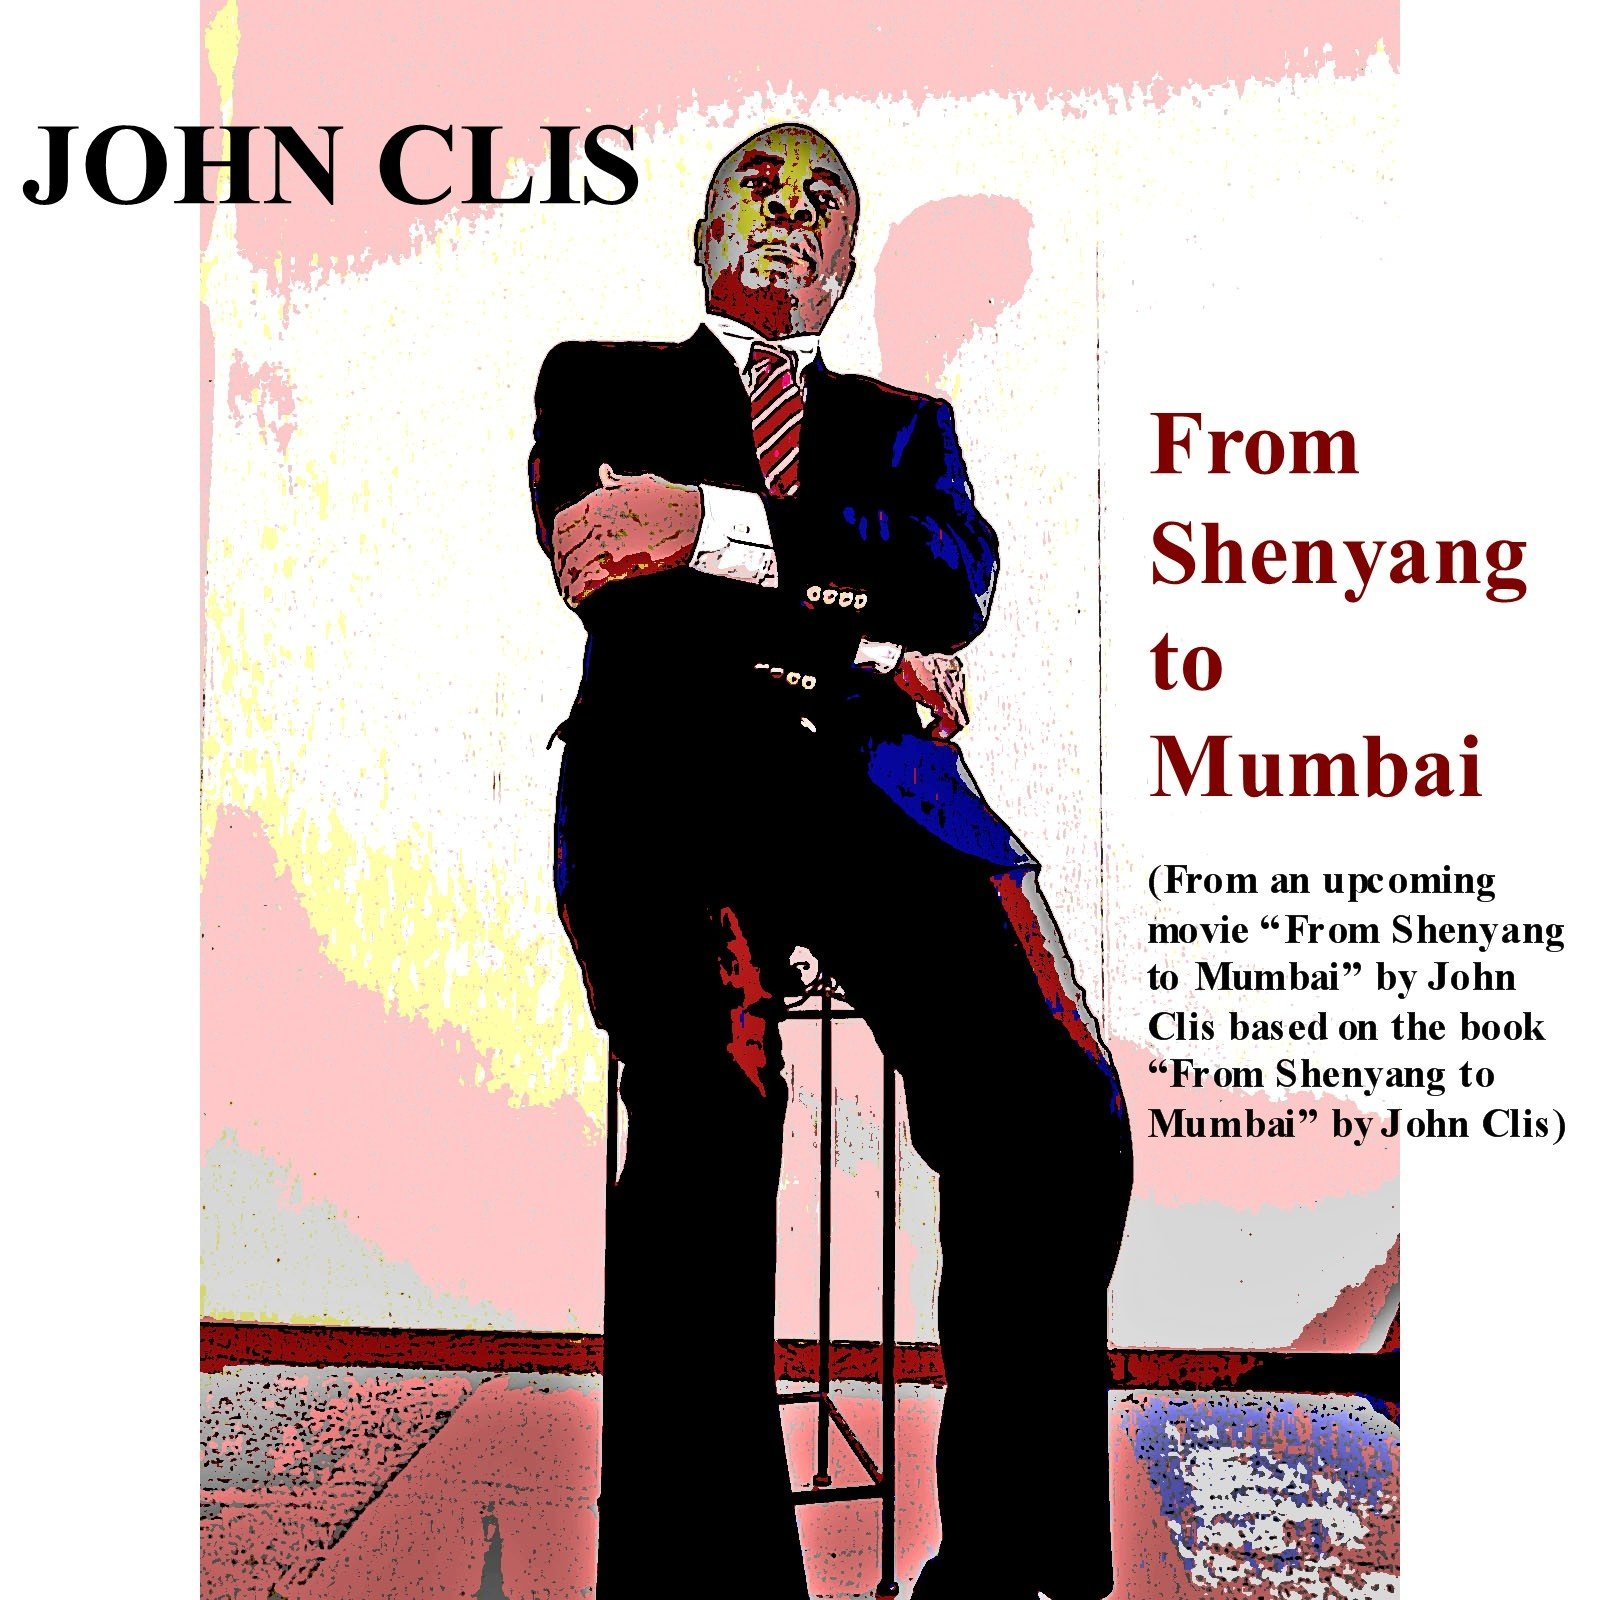 https://0201.nccdn.net/4_2/000/000/038/2d3/John-Clis---From-Shenyang-to-Mumbai---Pic-1a-1600x1600.jpg